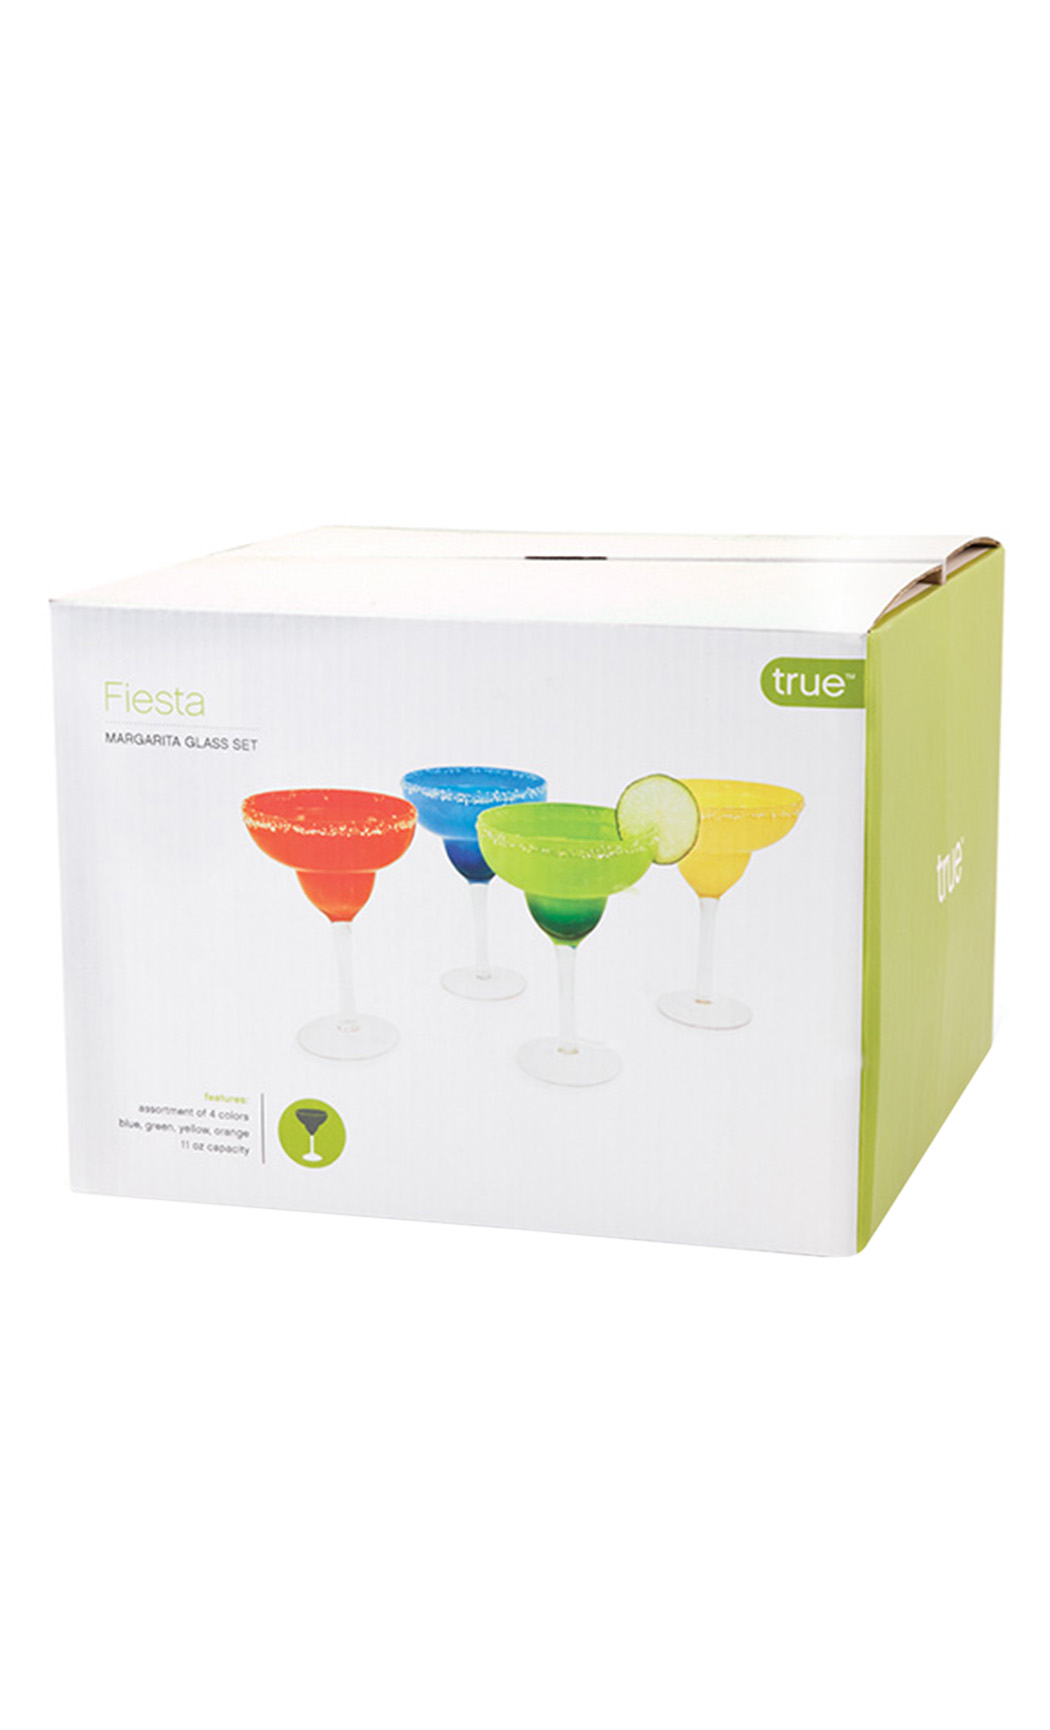 Fiesta Margarita Glasses Set (4 Pieces)